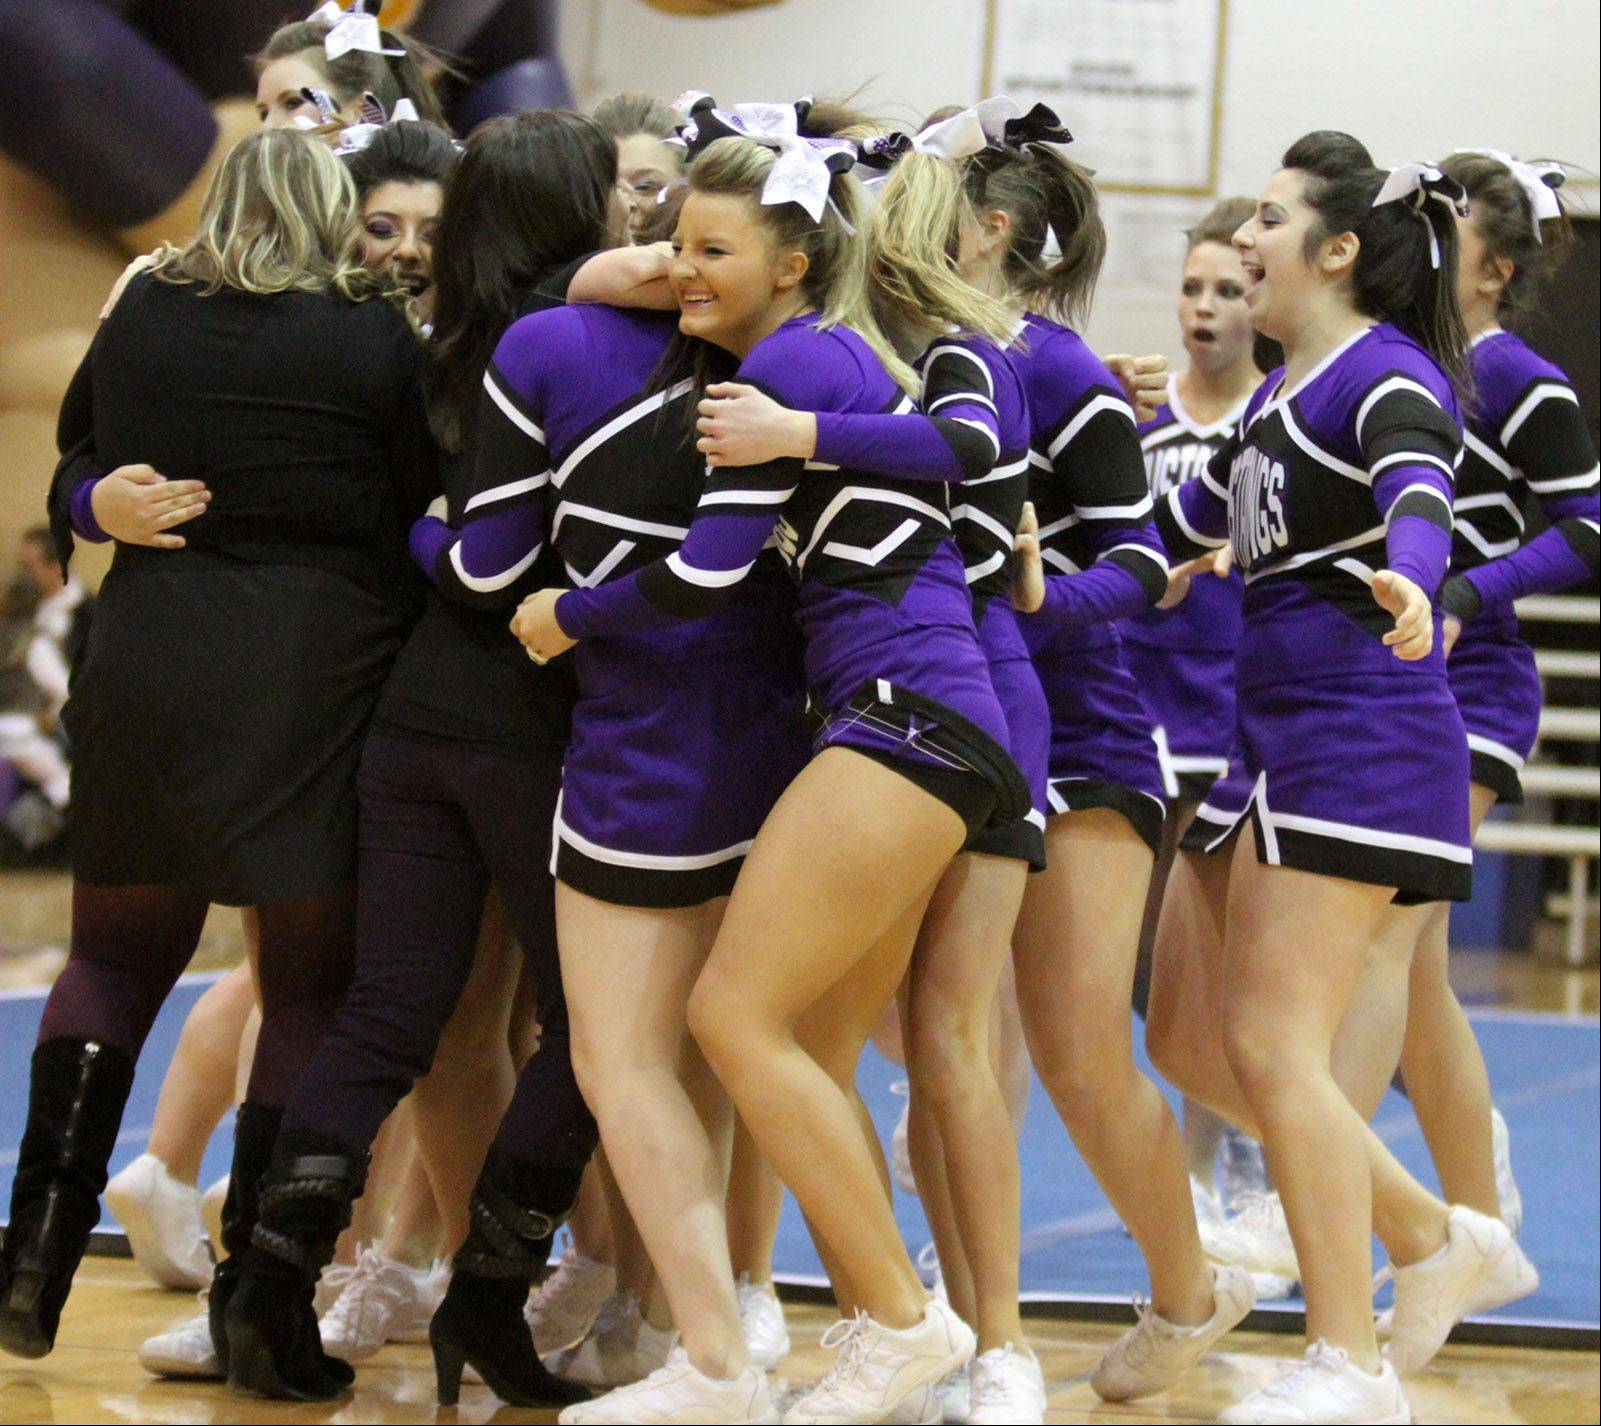 Rolling Meadows High School celebrates their performance at the IHSA competitive cheerleading sectionals in Rolling Meadows on Saturday